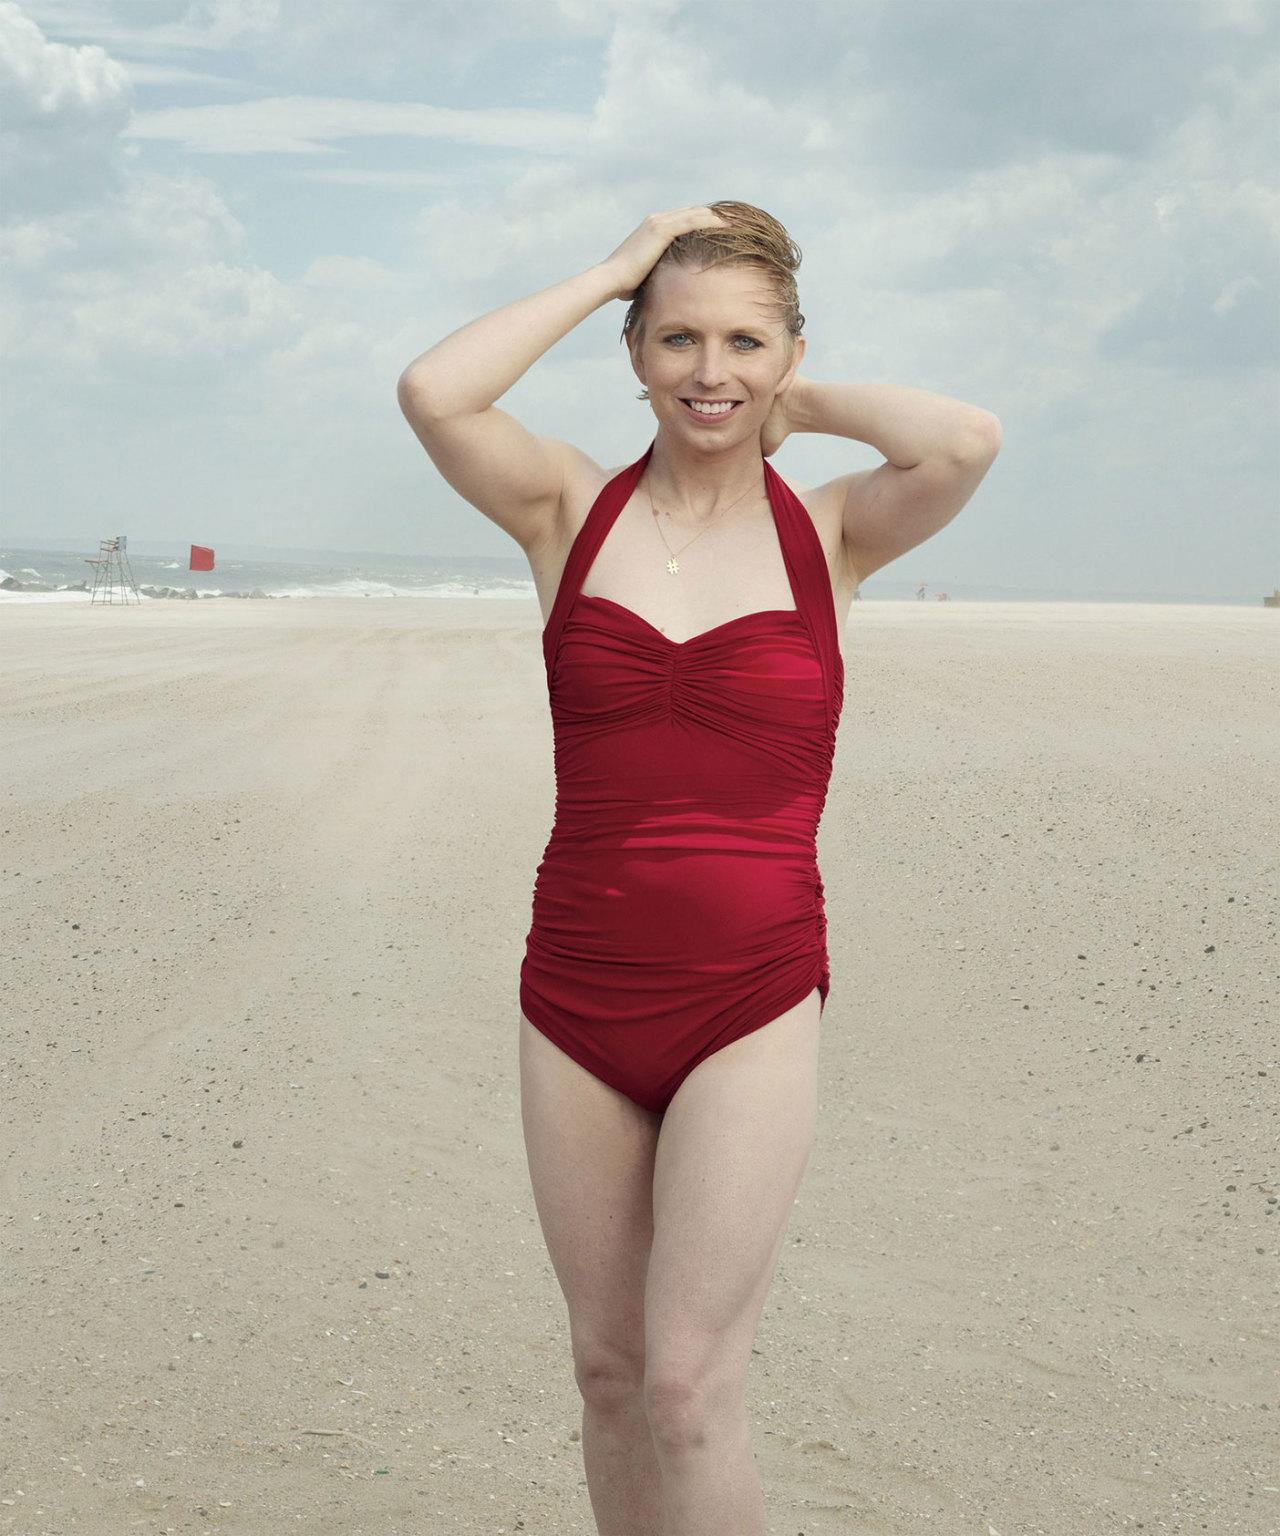 Chelsea Manning poses in swimsuit for Vogue: 'This is what freedom looks like'